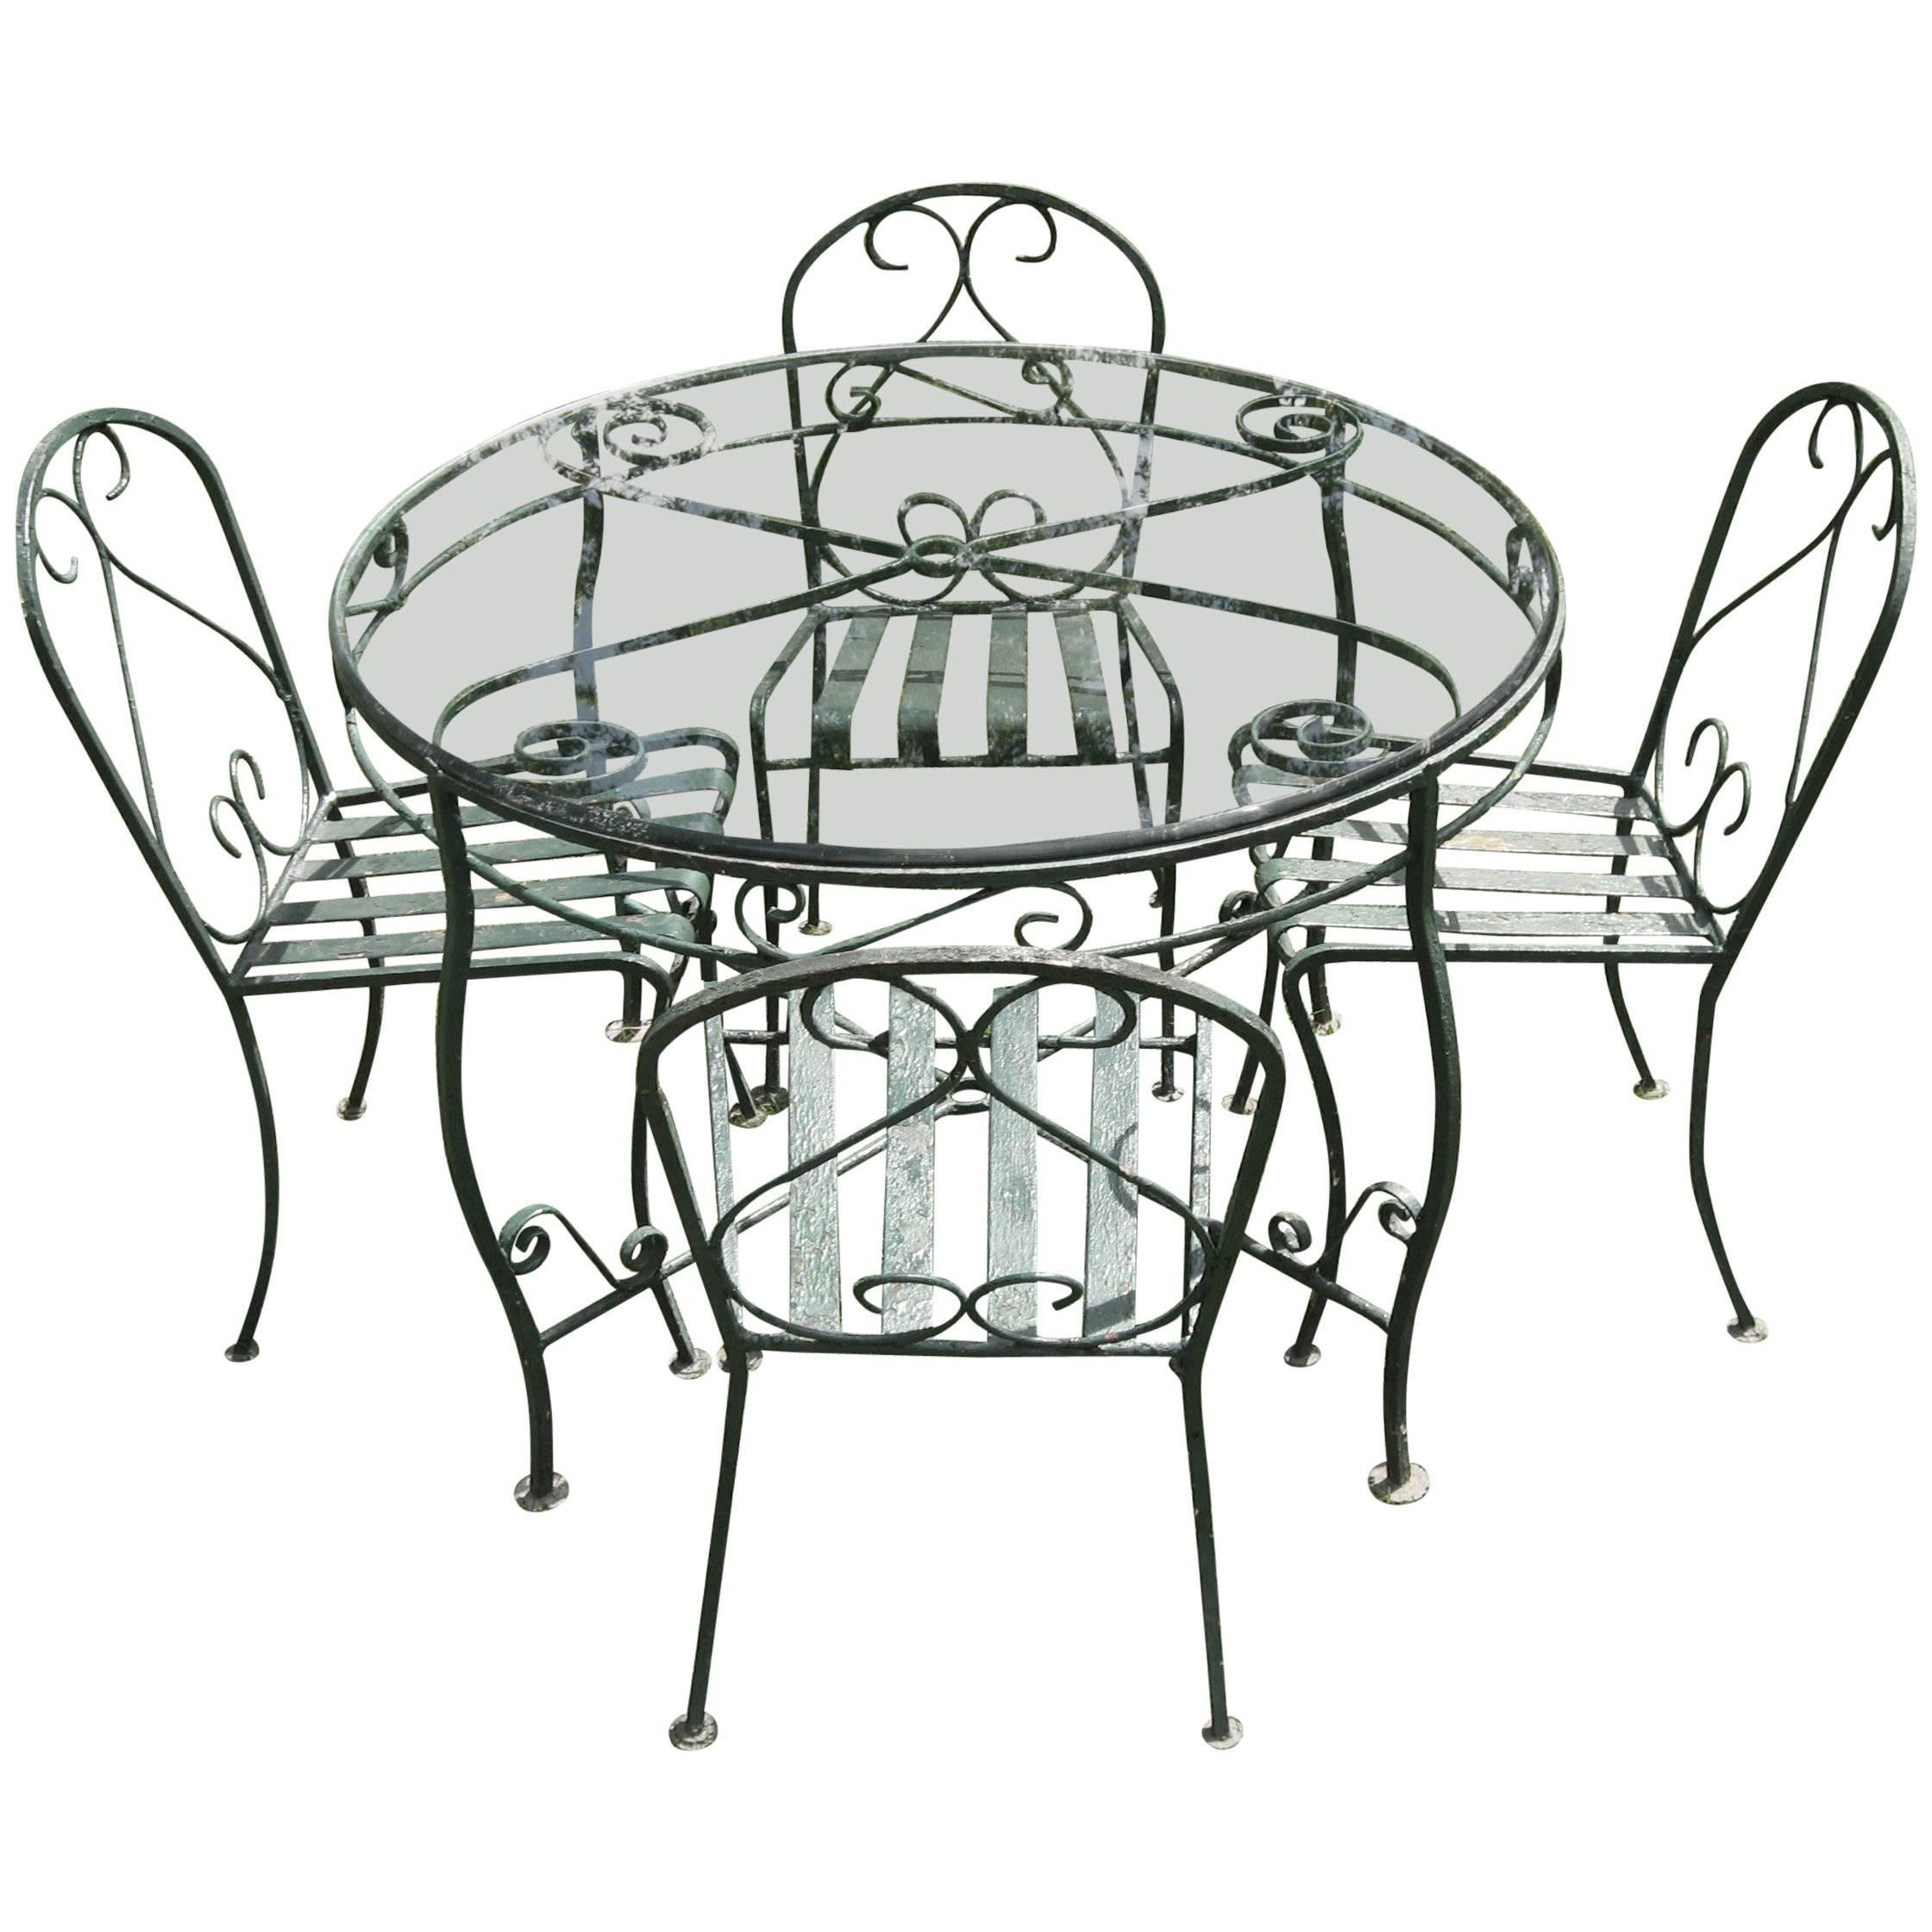 1940s patio and garden furniture 89 for sale at 1stdibs Kitchen Steel Cabinet 1970s